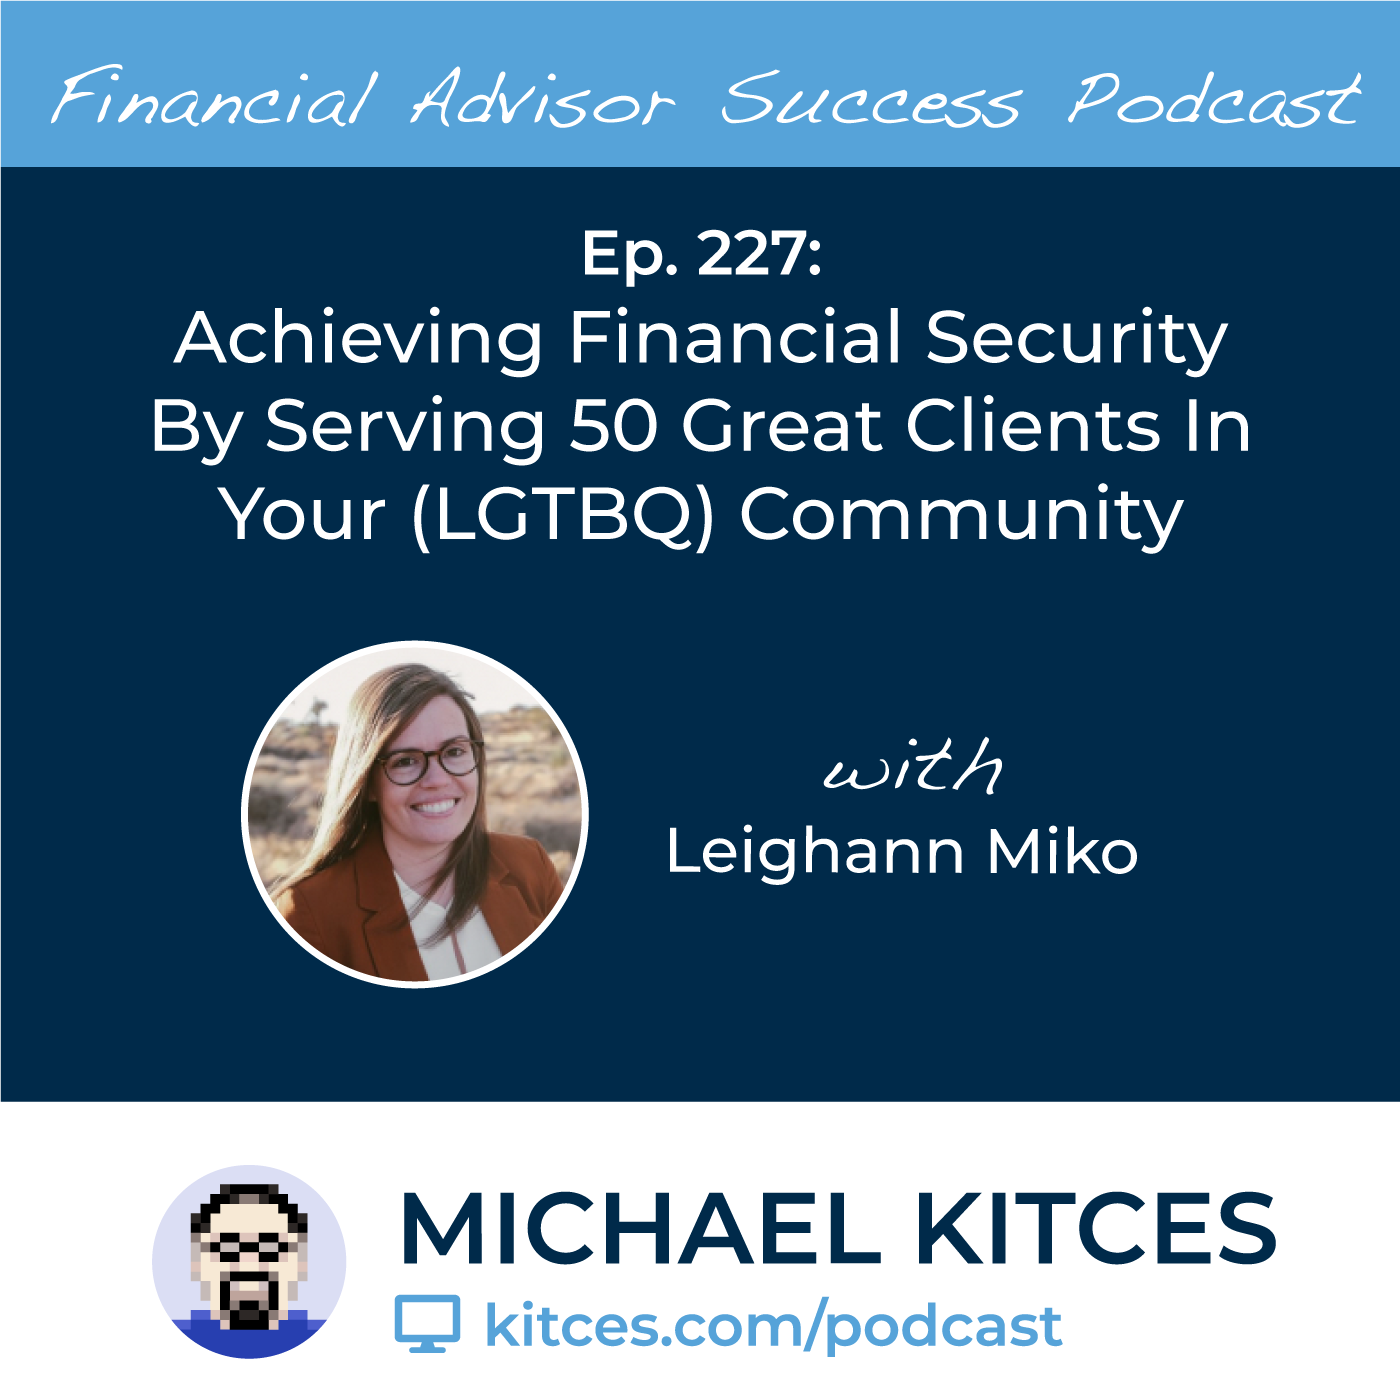 Ep 227: Achieving Financial Security By Serving 50 Great Clients In Your (LGBTQ) Community with Leighann Miko